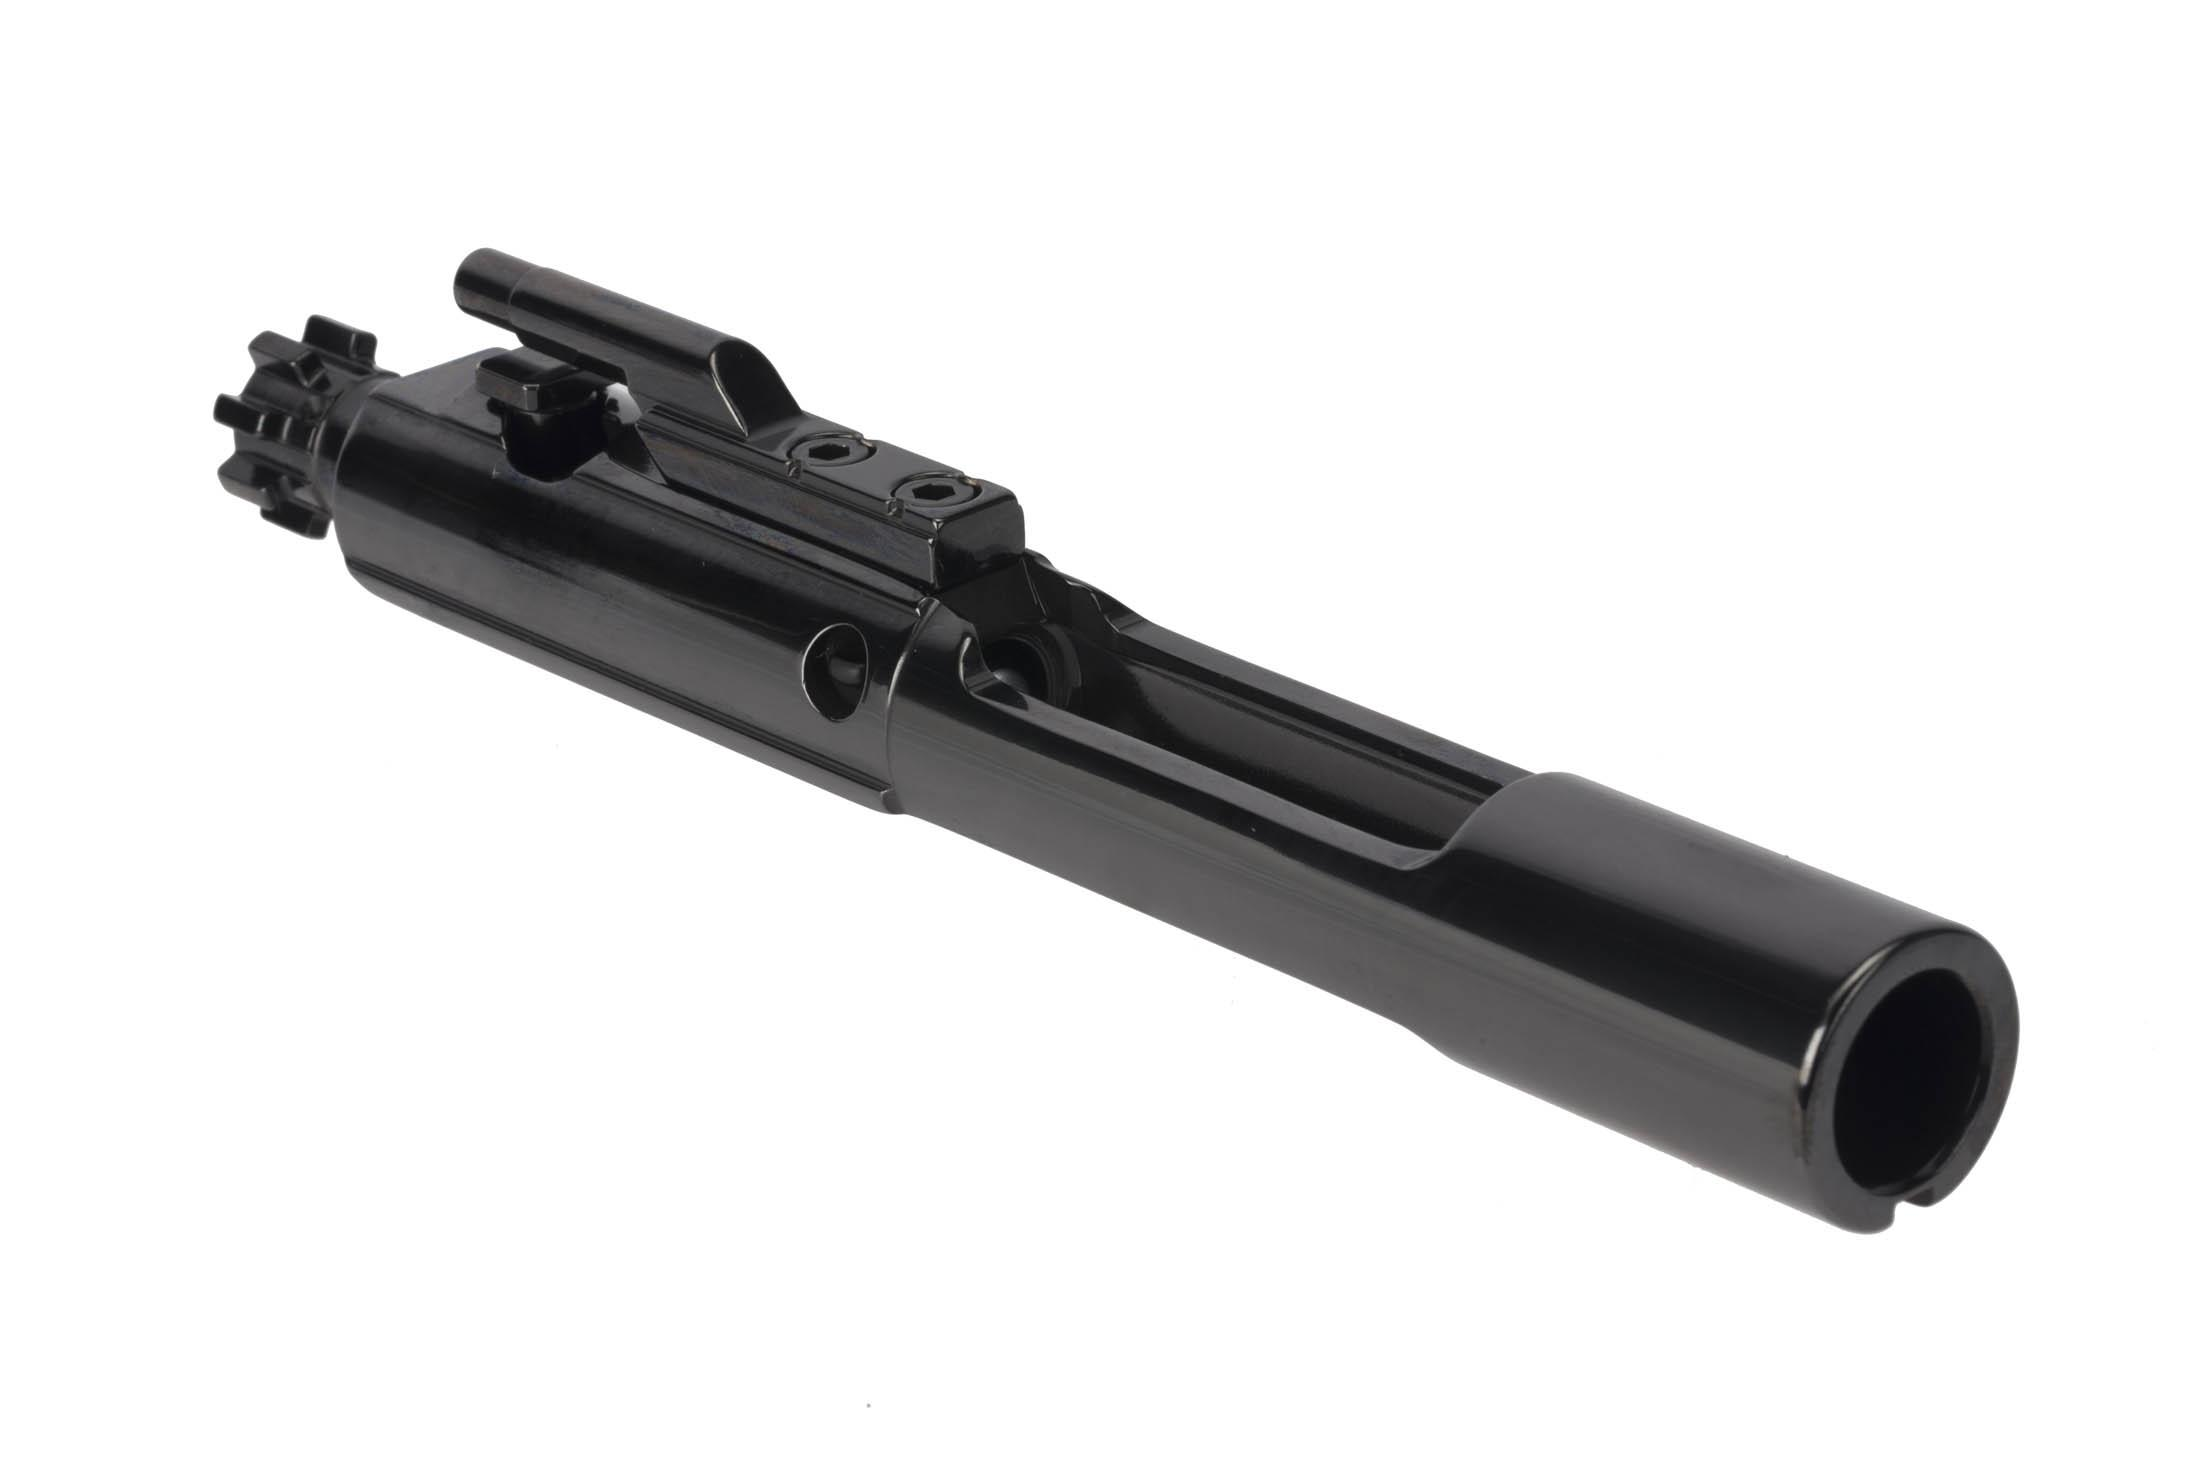 Cryptic Coatings Mystic Black AR-15 bolt carrier group for 6.8SPC / .224 Valk has an ultra-slick 0.01 coefficient of friction